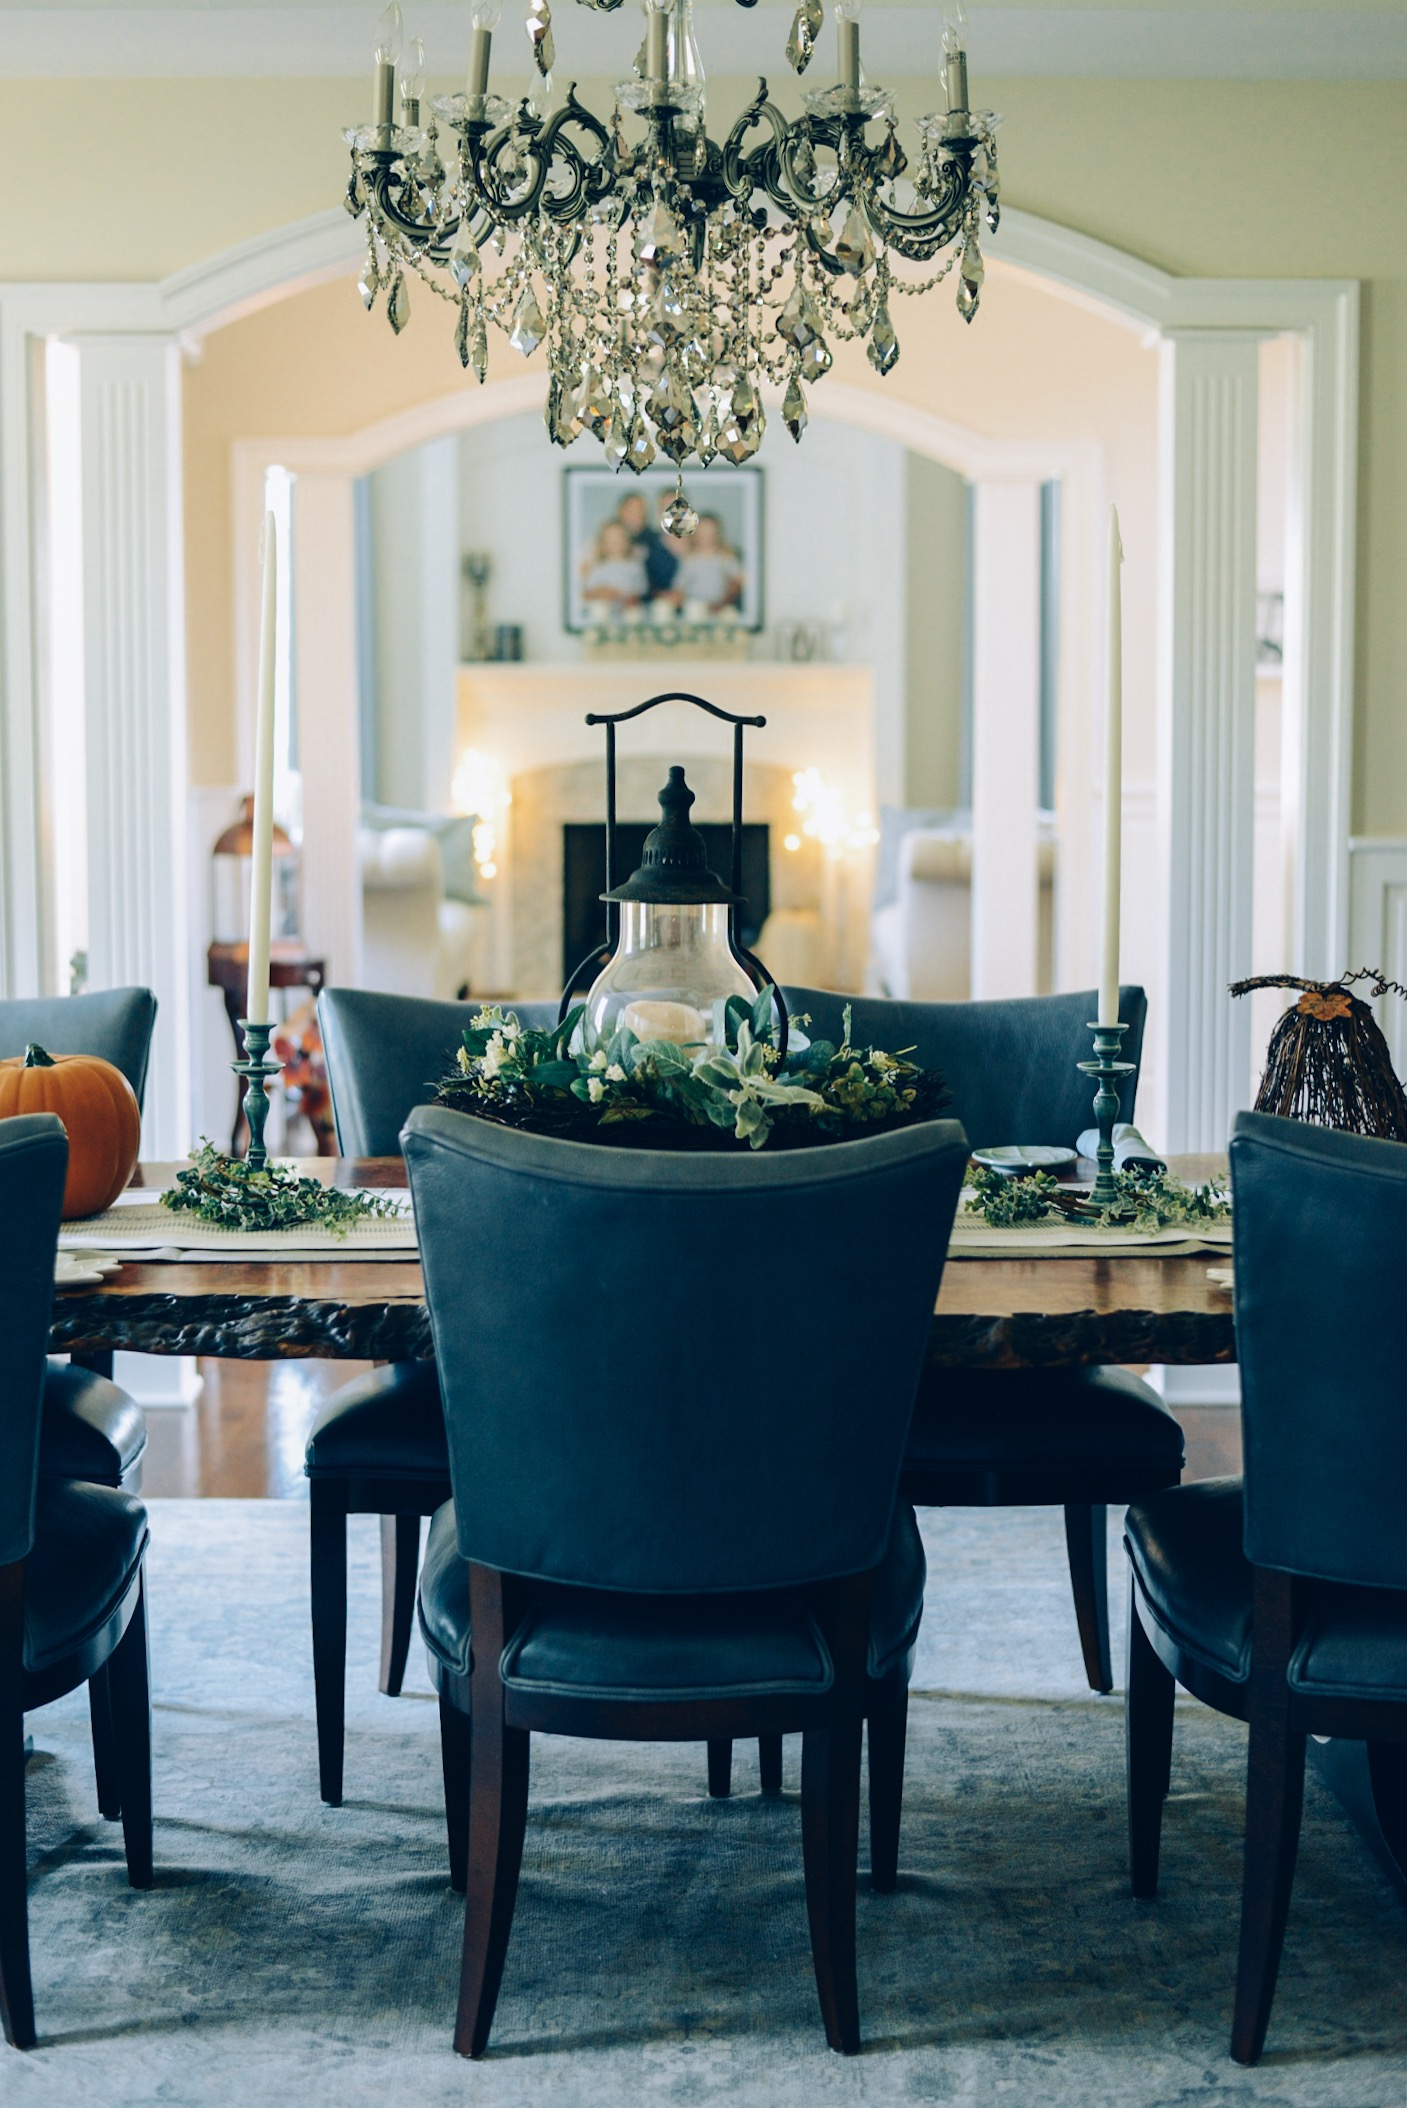 How I decorated my home interior for fall- dining room and formal living room ideas. fall decor, eucalyptus wreaths